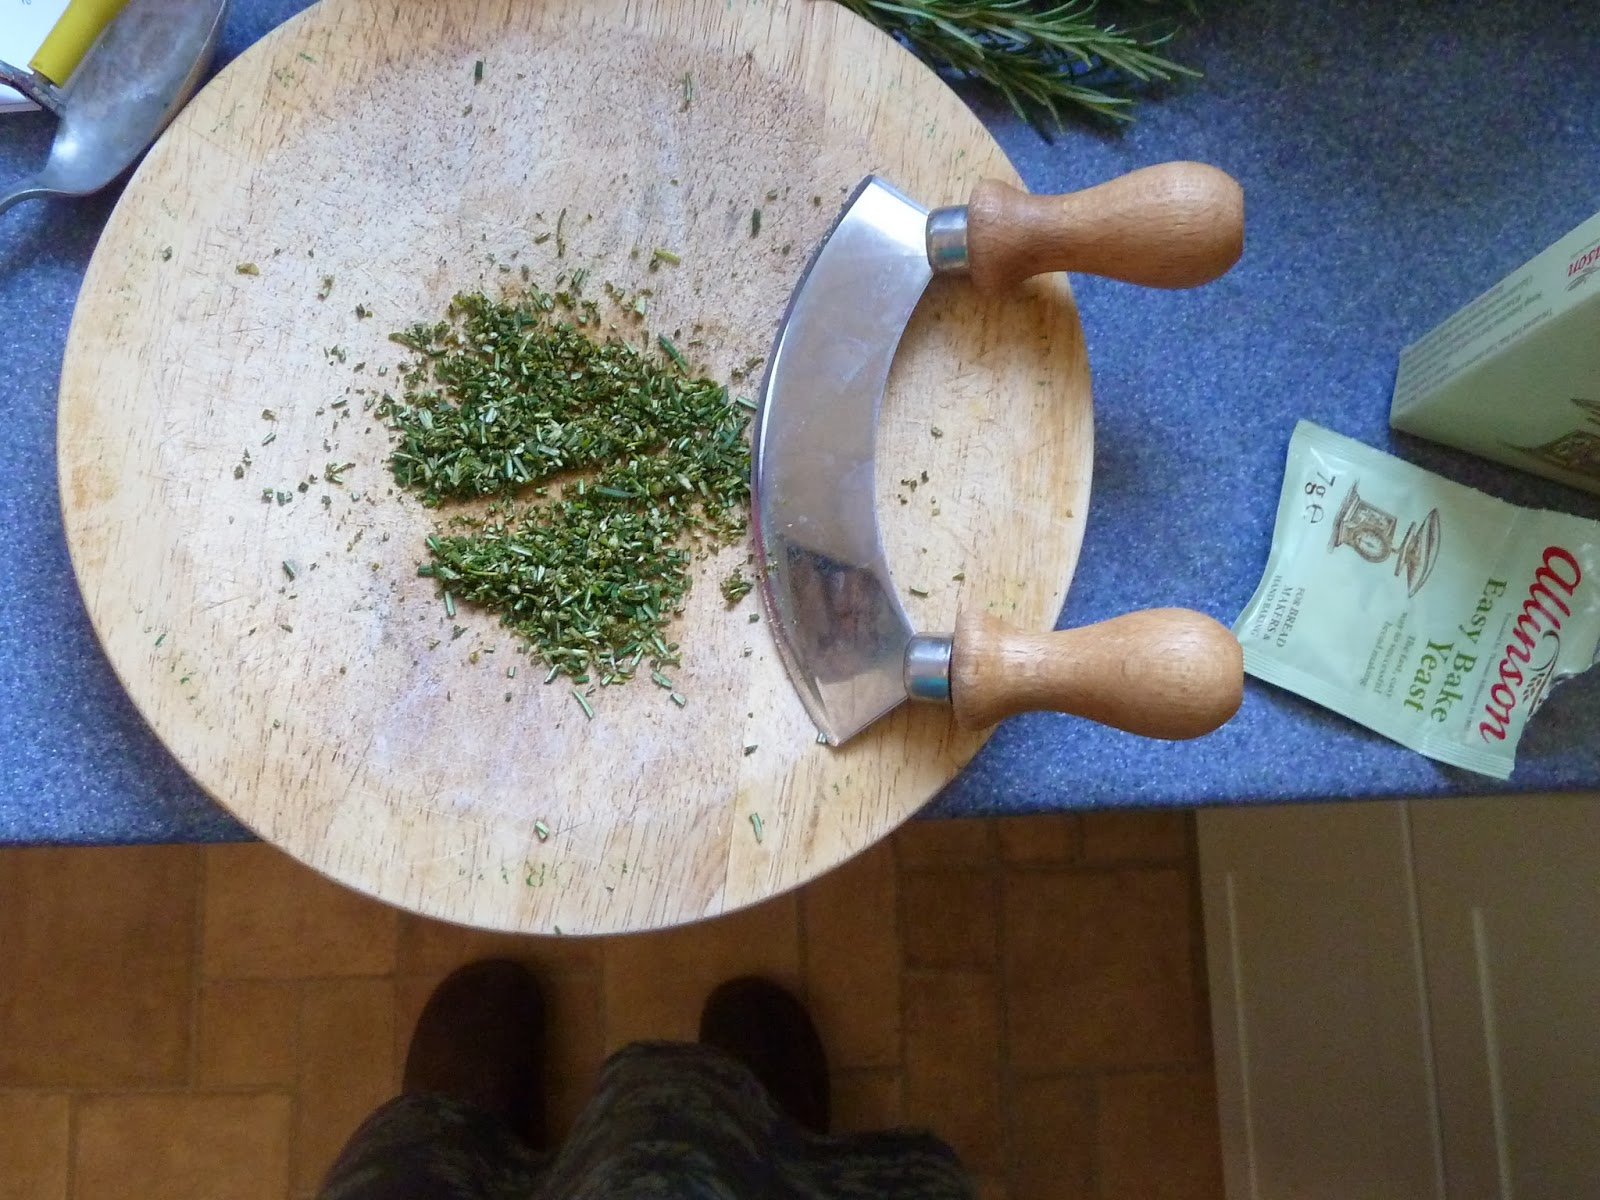 Freshly chopped rosemary on board with rocking knife